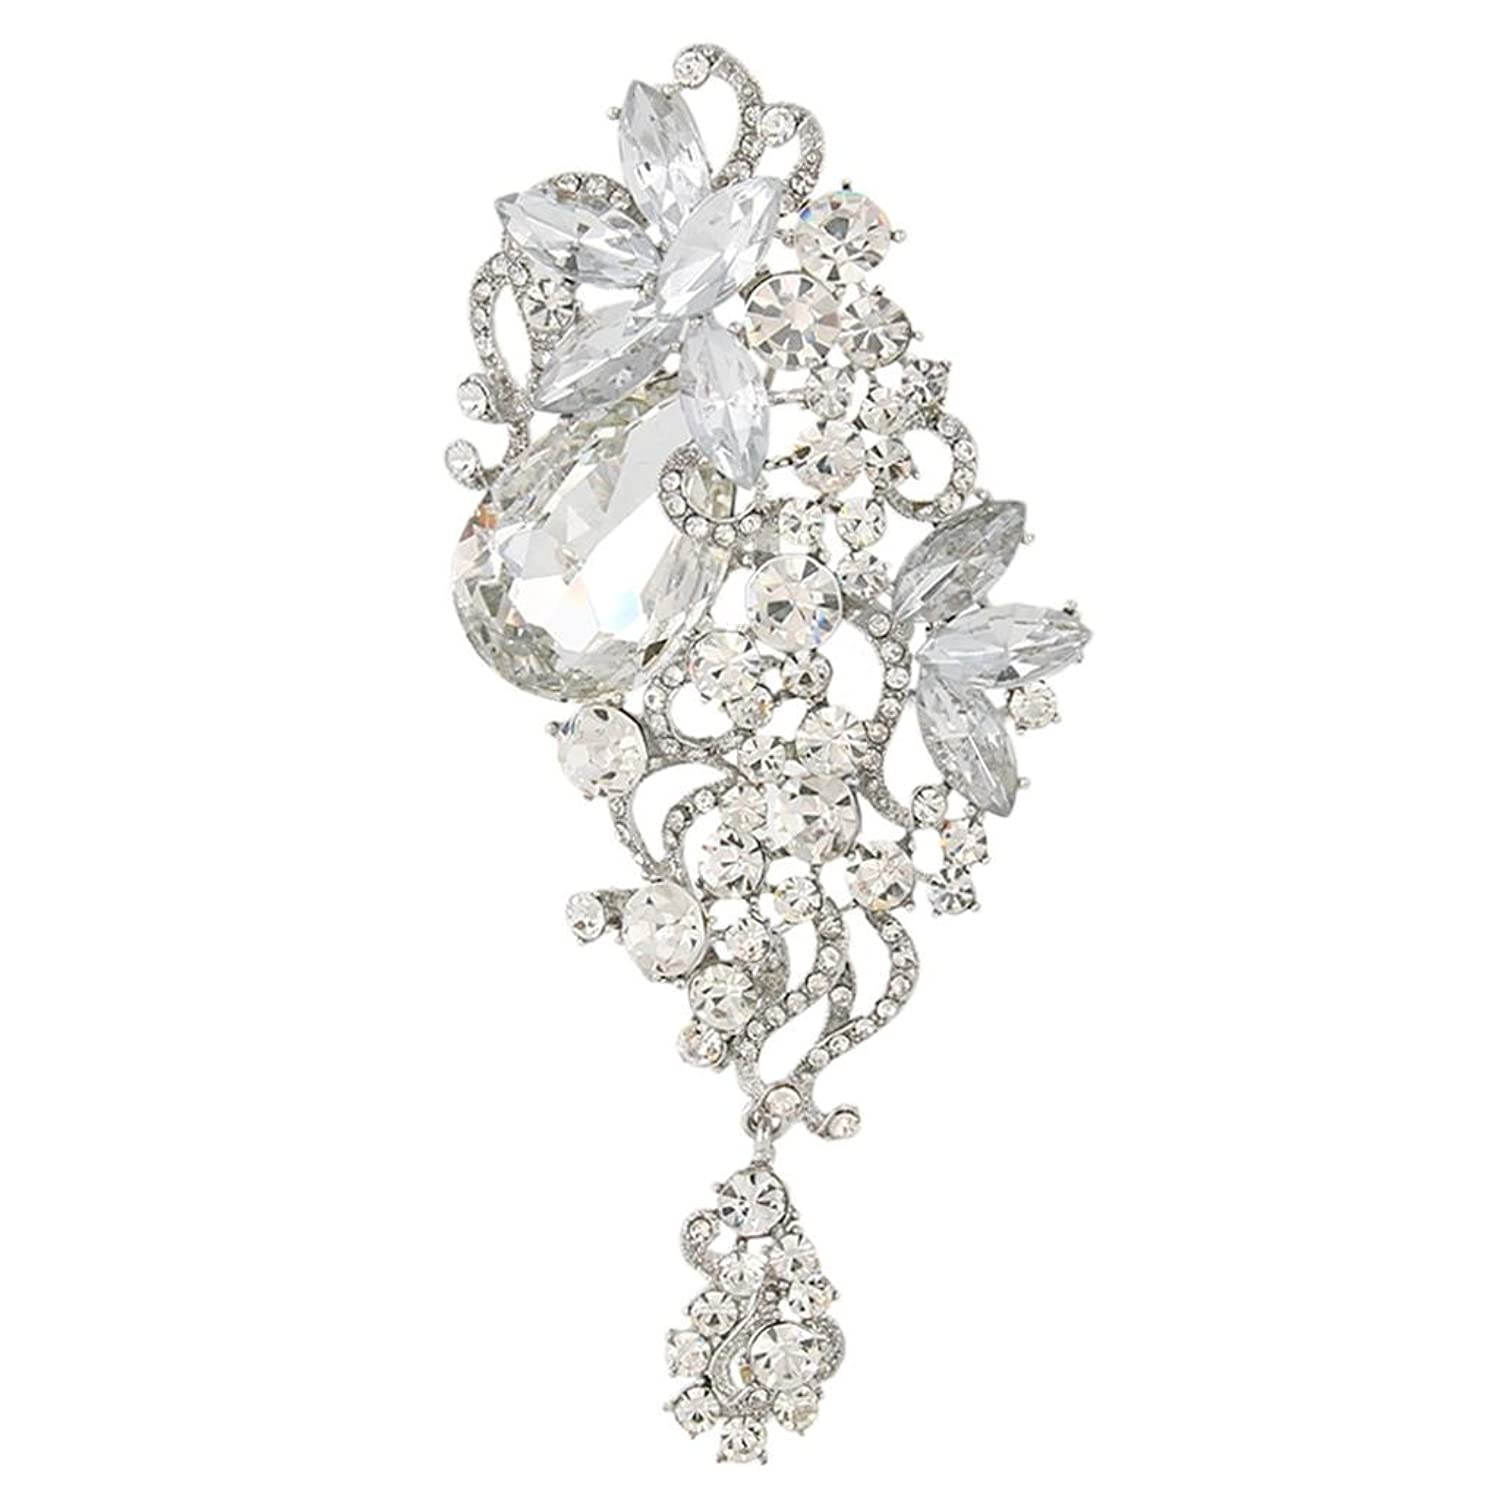 EVER FAITH Austrian Crystal 4.5 Inch Party Floral Vine Waterdrop Brooch Pendant